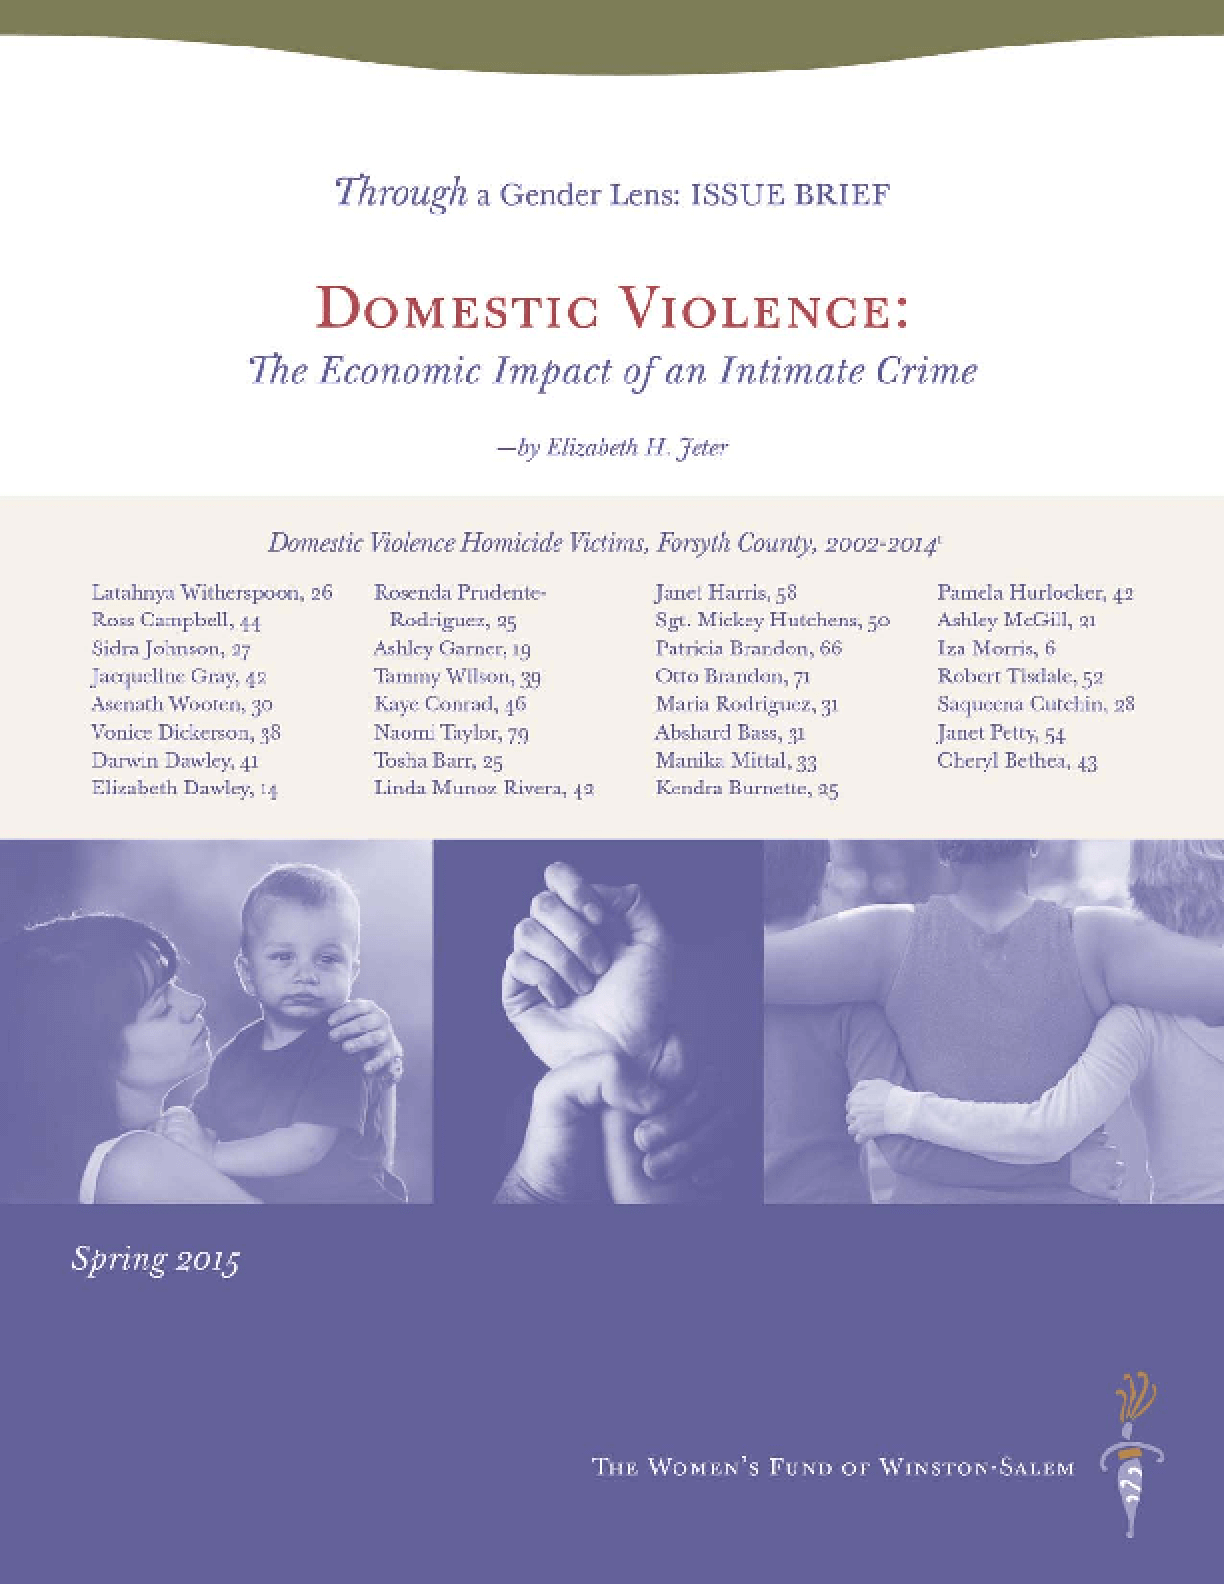 Domestic Violence: The Economic Impact of an Intimate Crime